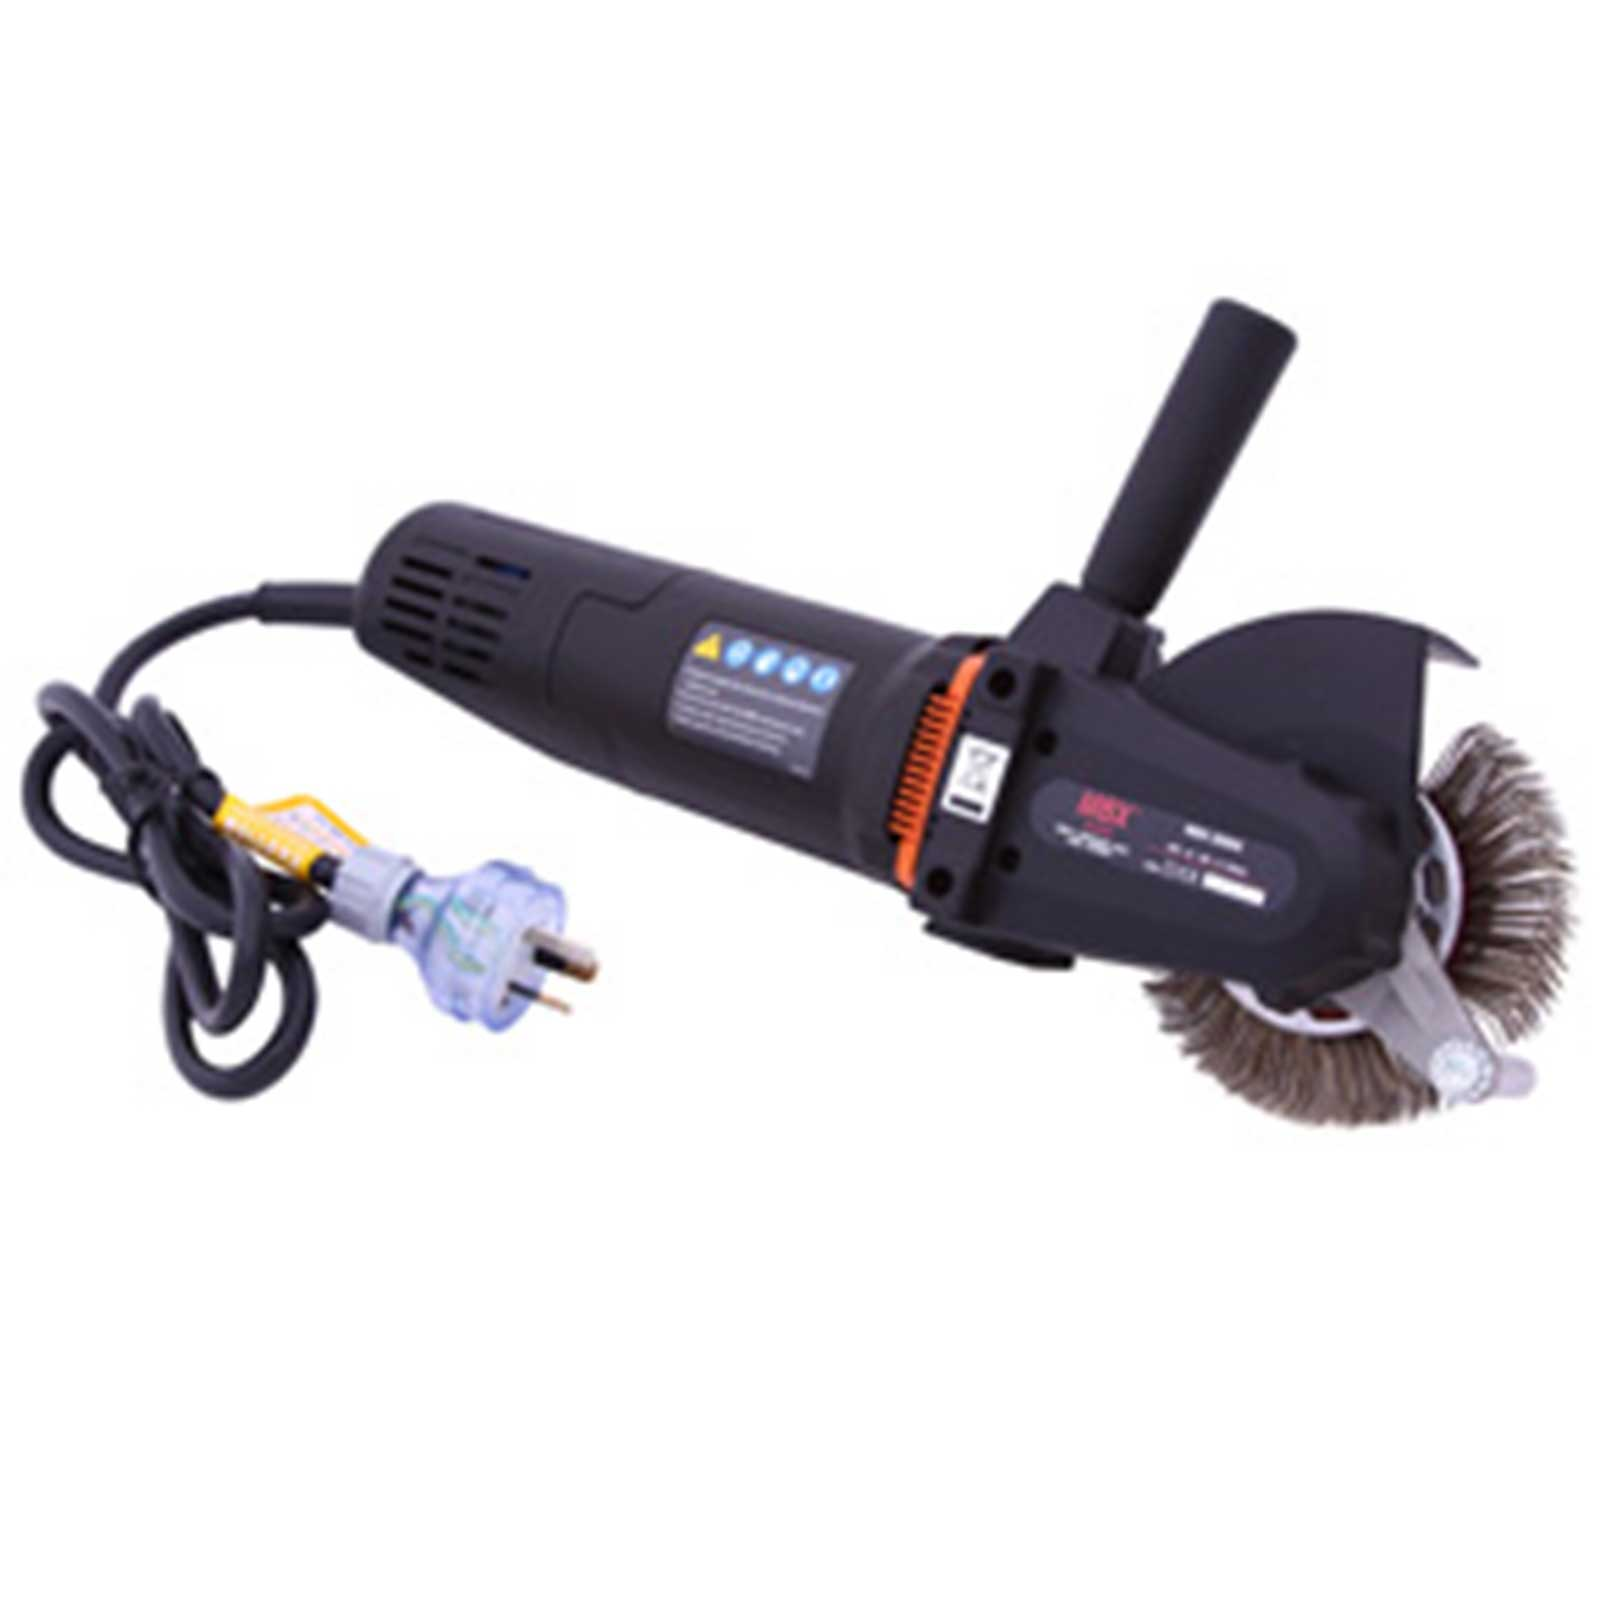 BRISTLE BLASTER INDUSTRIAL ELECTRIC 110V or 230V SE-660-BMC-UK - Rustbuster